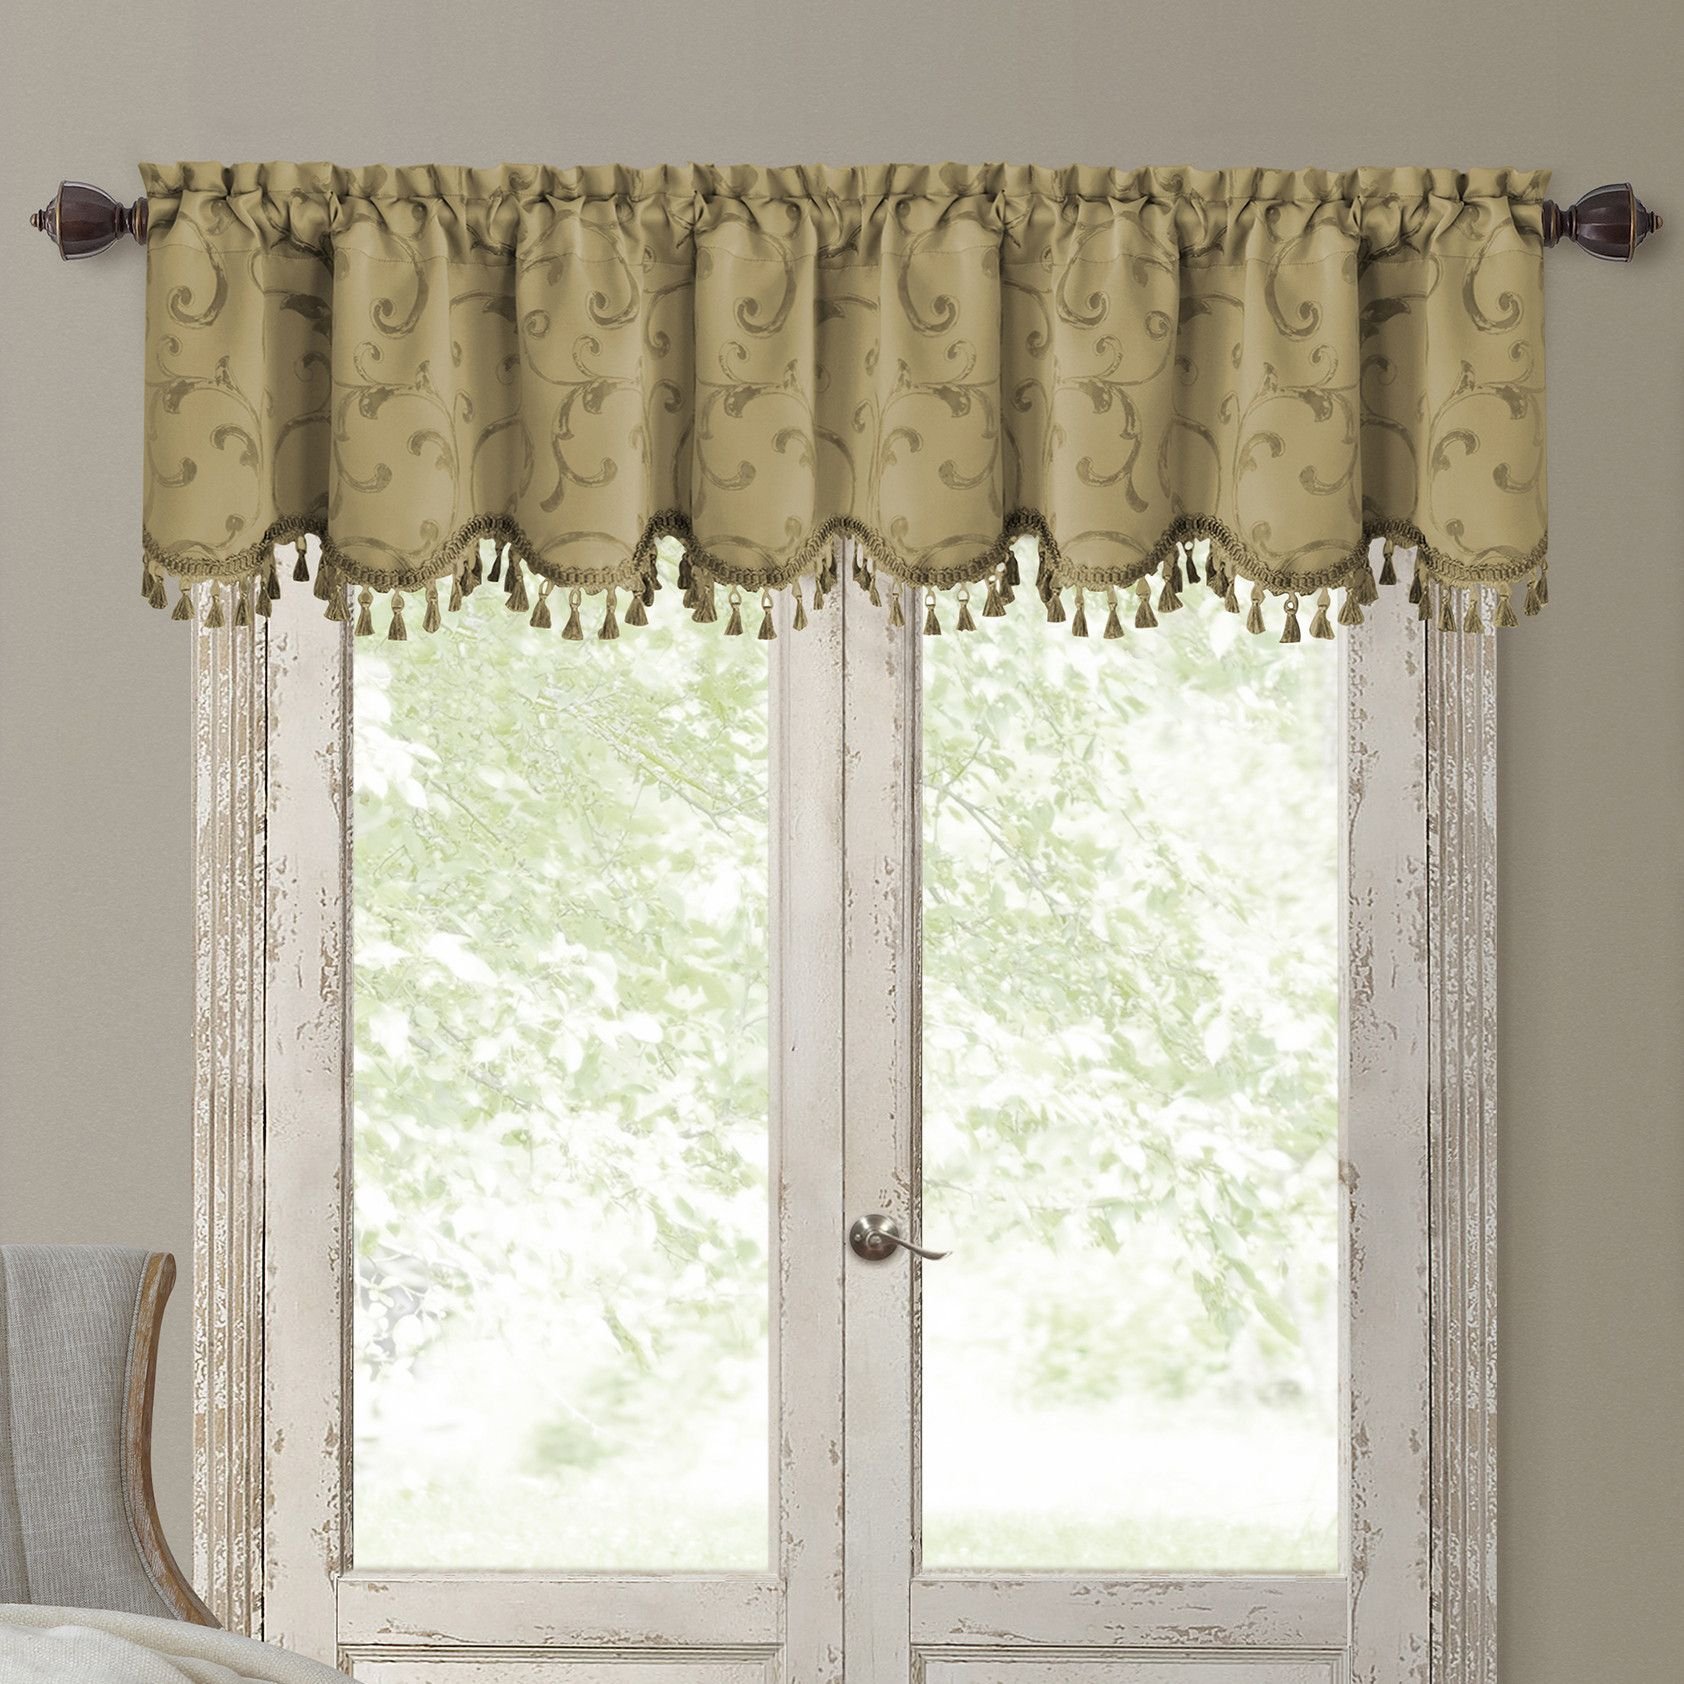 Elrene Home Fashions Mia Curtain Valance   Products In Elrene Mia Jacquard Blackout Curtain Panels (View 14 of 20)